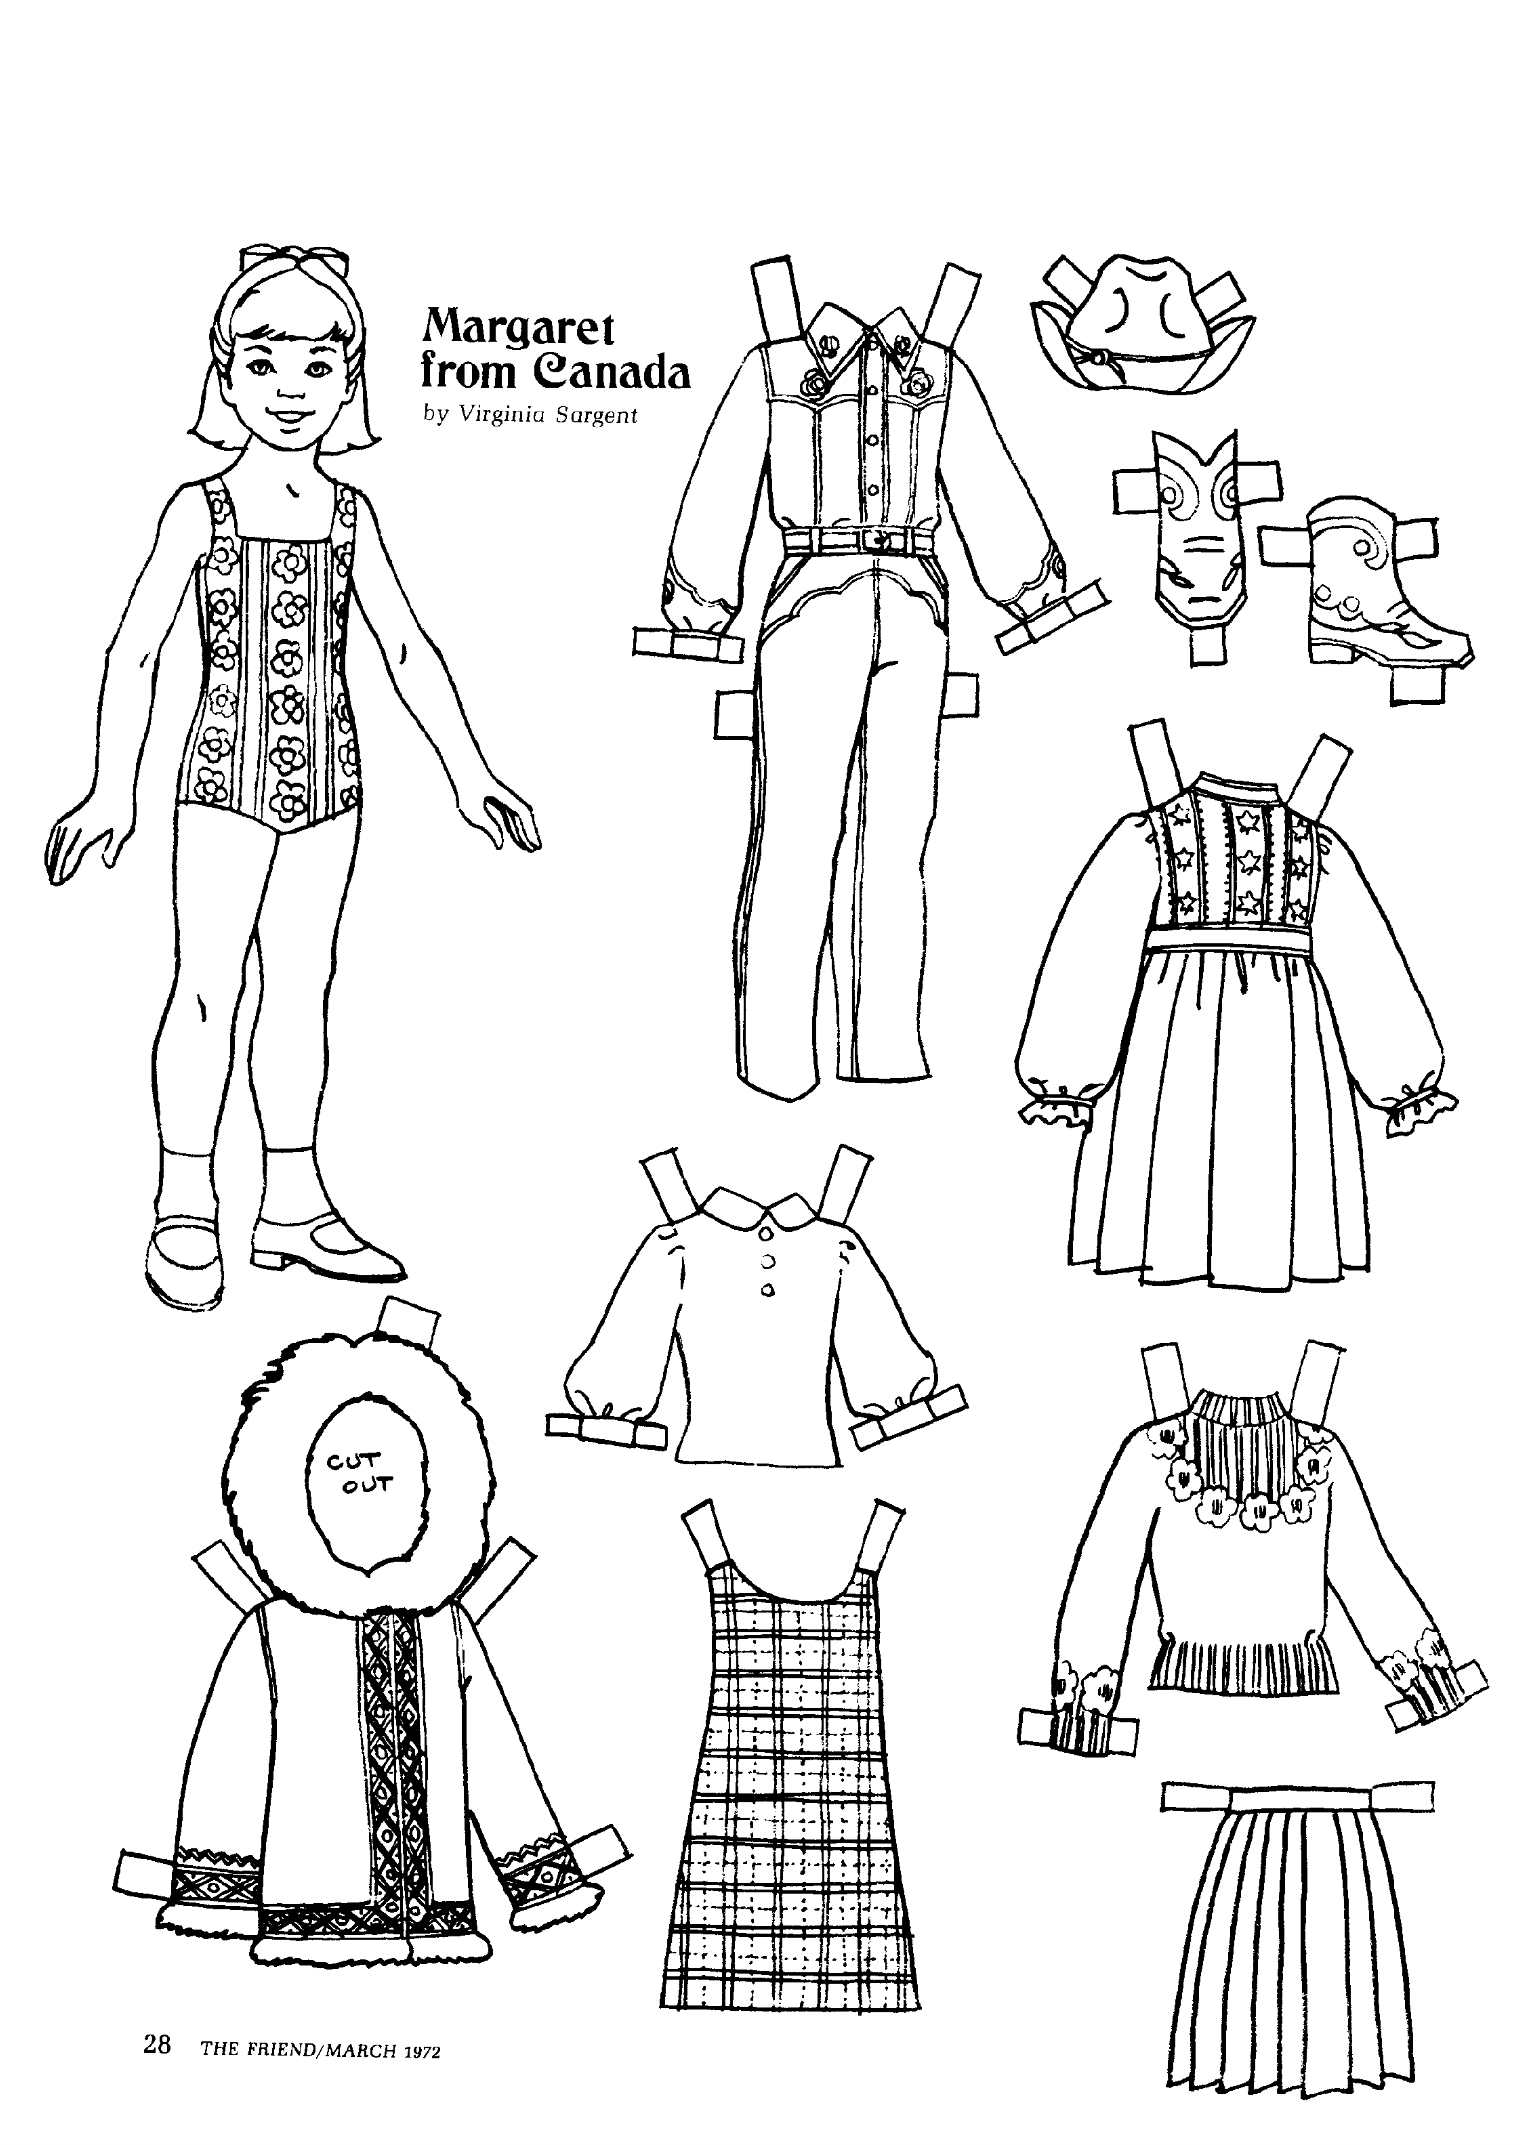 The Friend magazine Paper Doll Canada